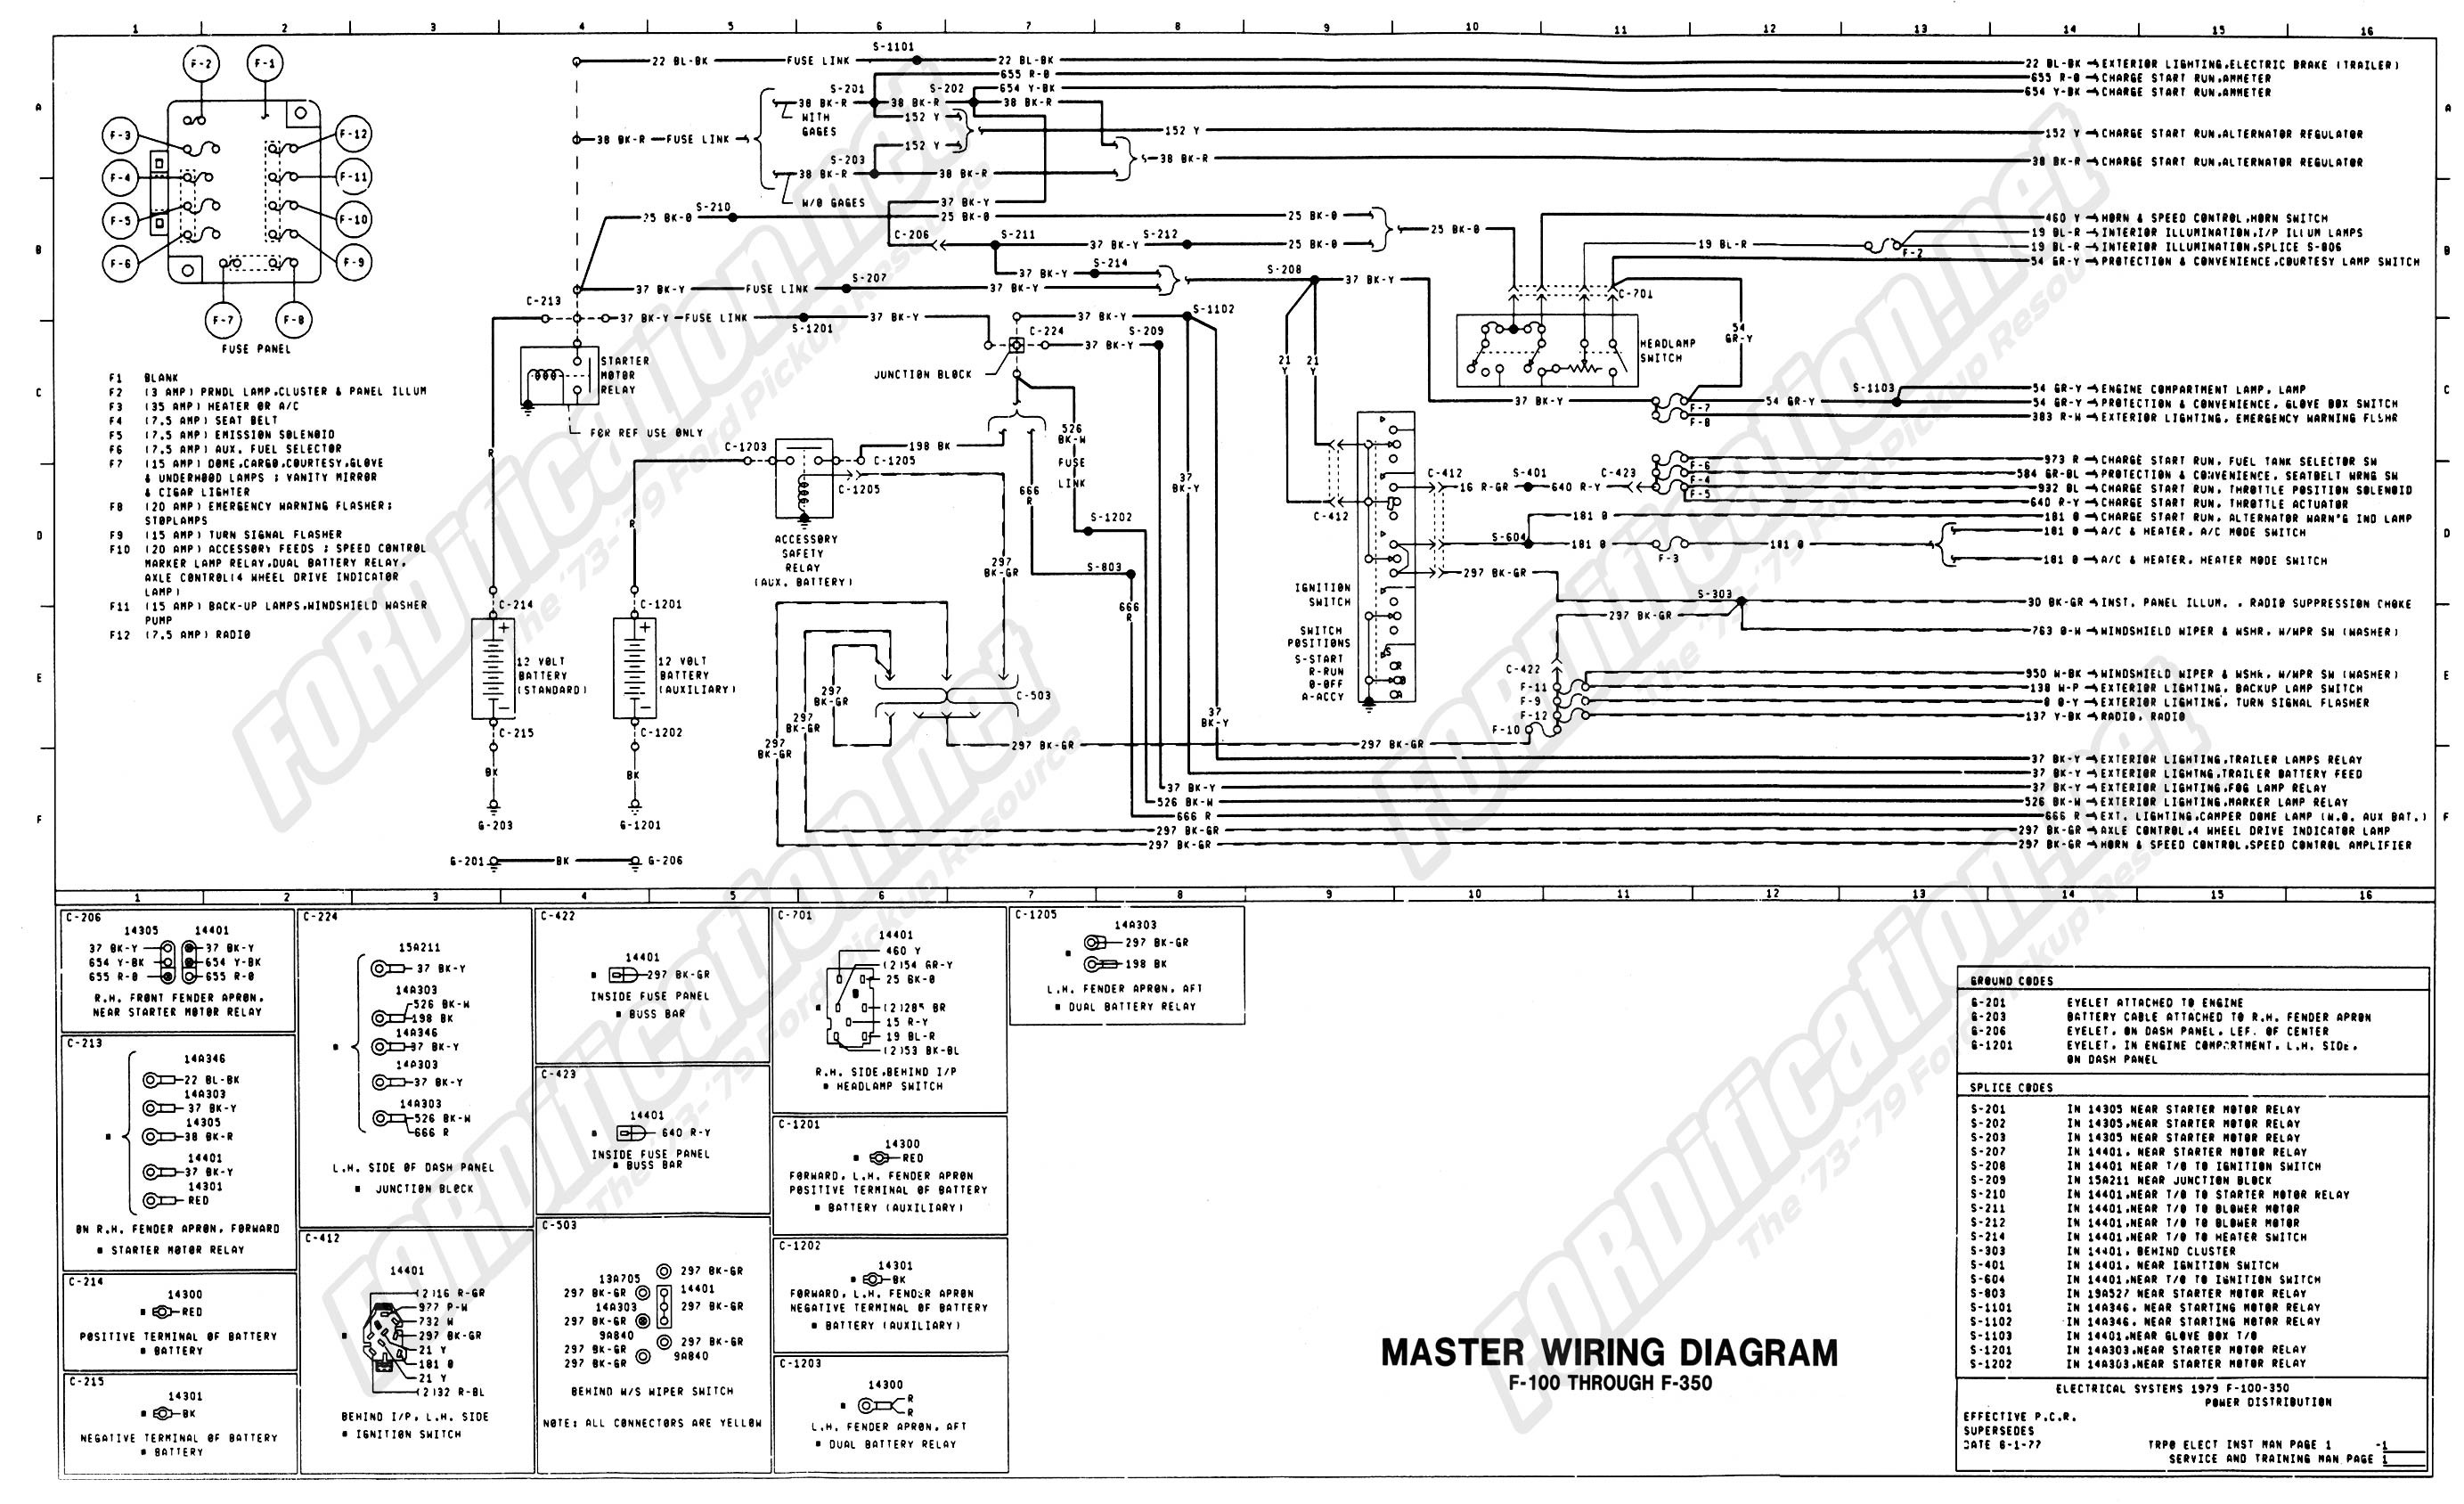 Ford F250 Engine Diagram 79 F150 solenoid Wiring Diagram ford Truck Enthusiasts forums Of Ford F250 Engine Diagram